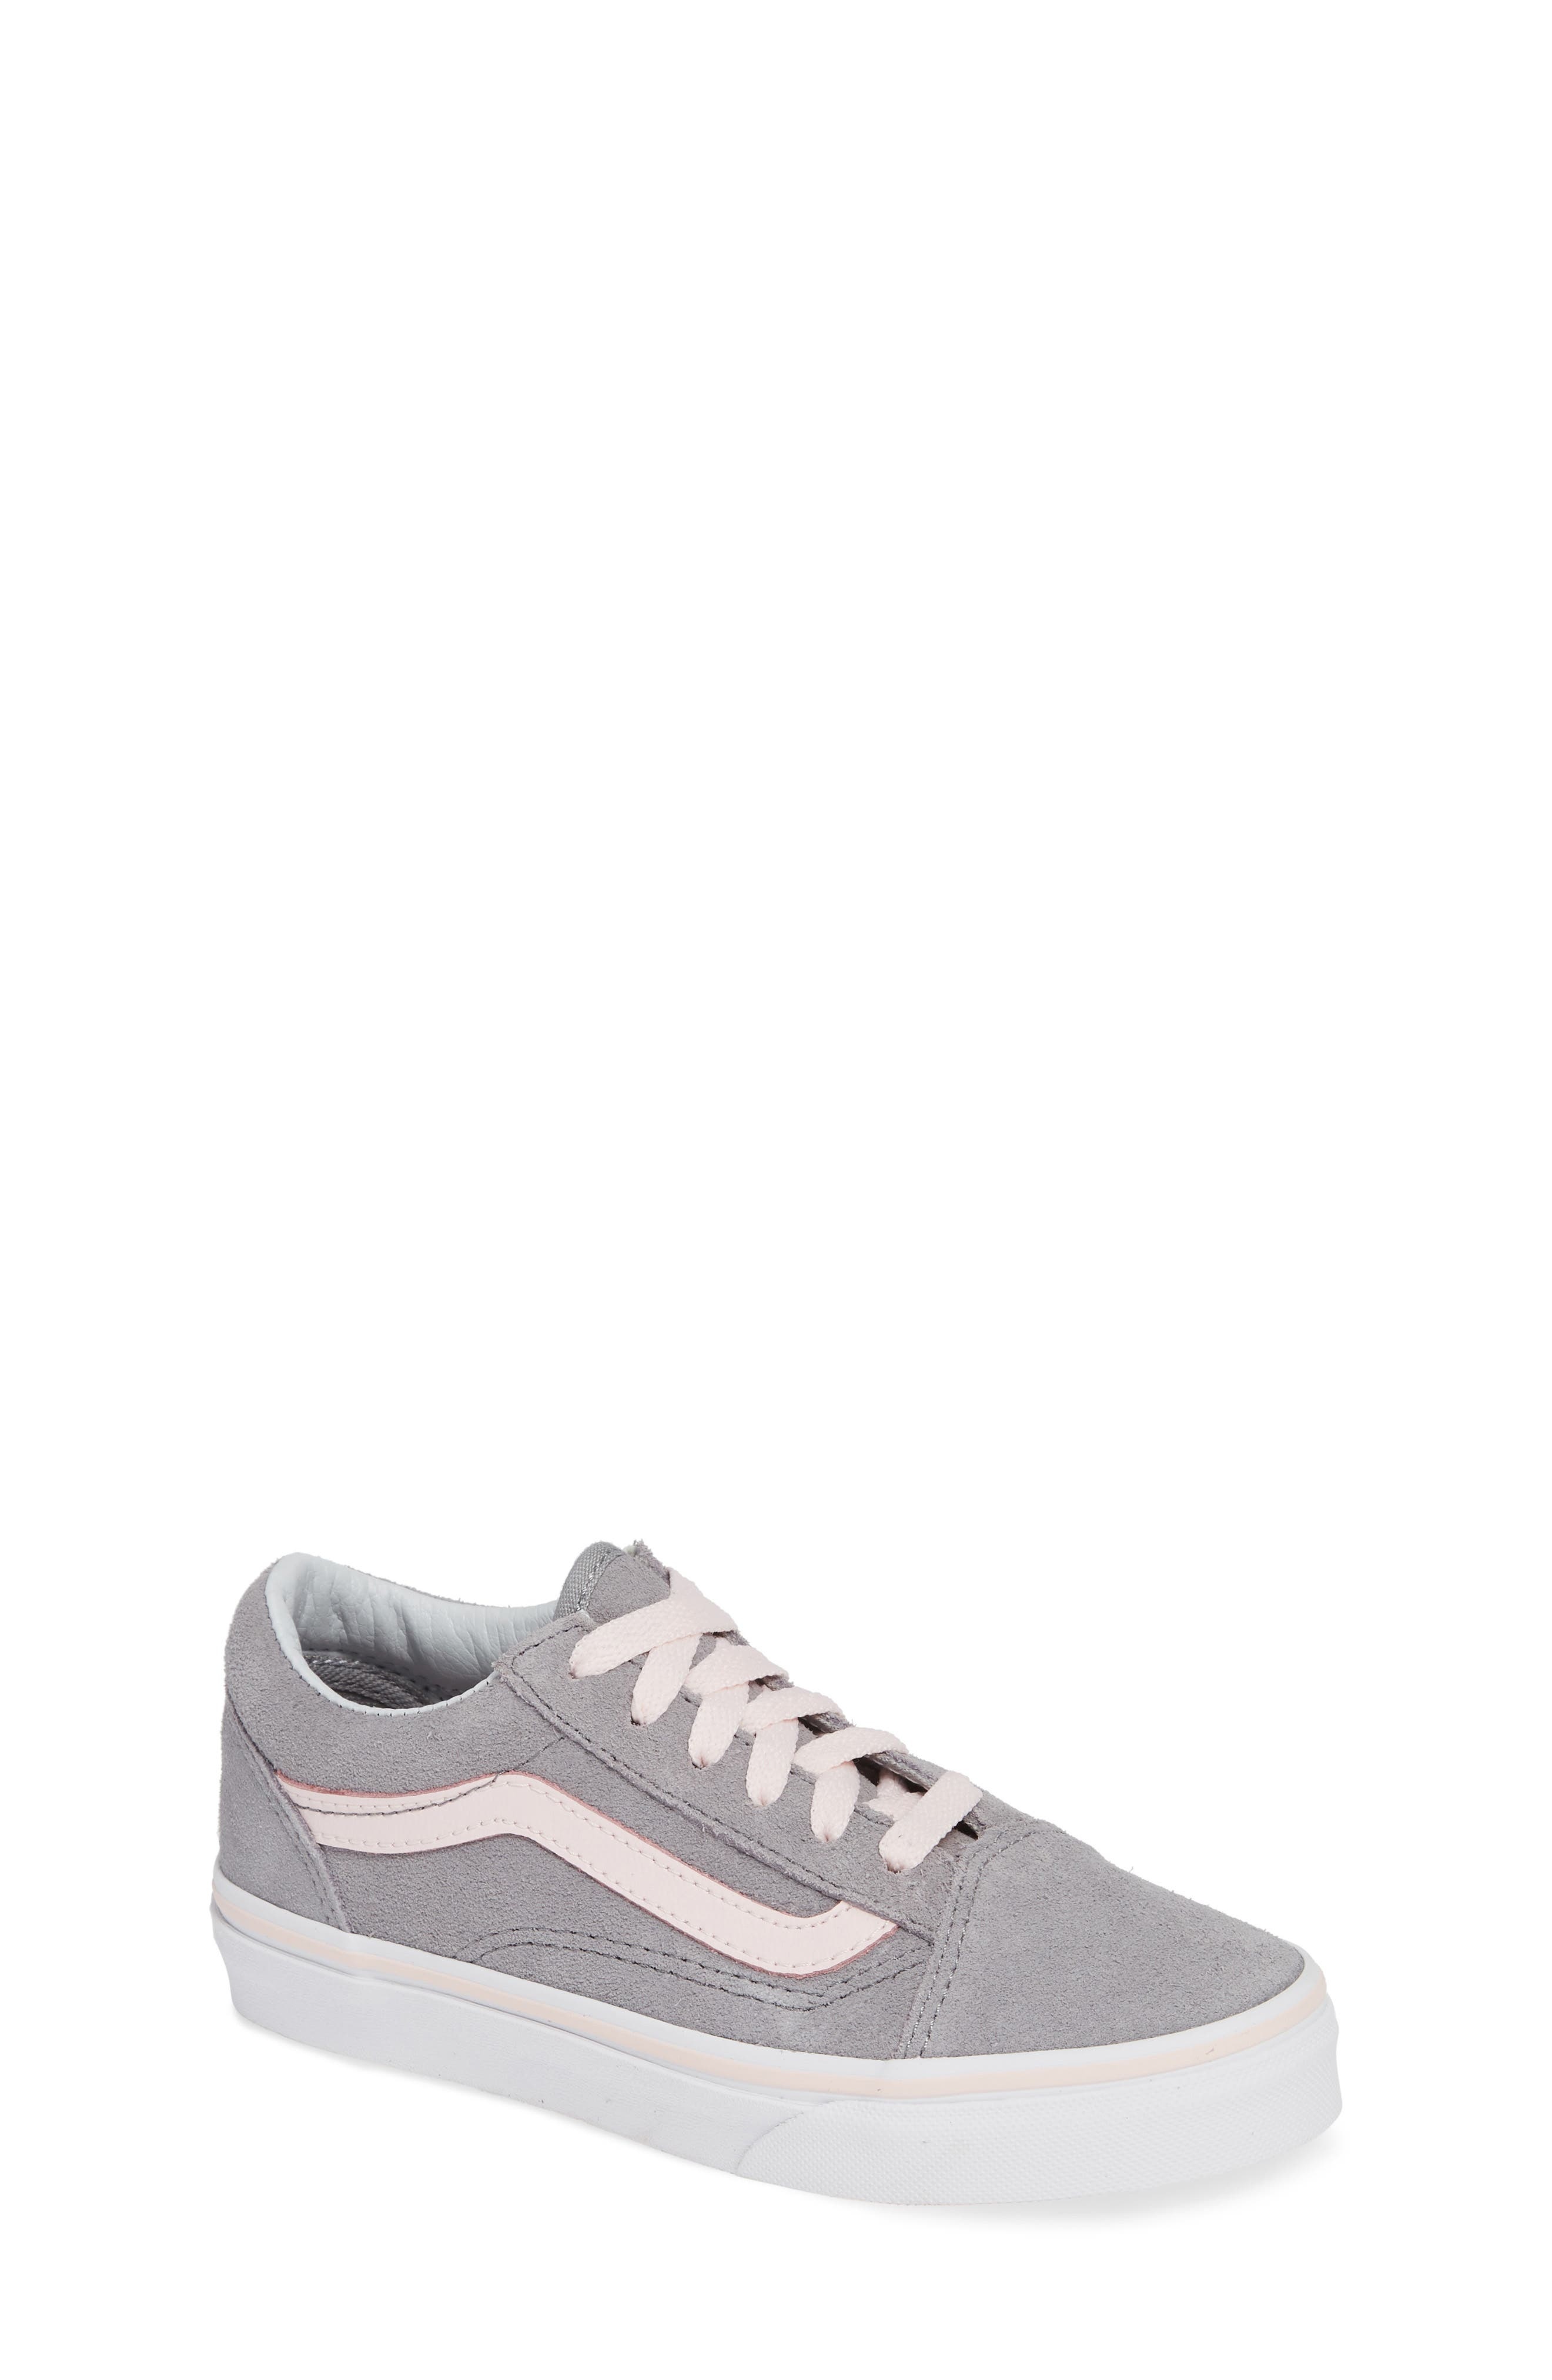 Old Skool Sneaker,                             Main thumbnail 1, color,                             SUEDE ALLOY/ PINK/ TRUE WHITE